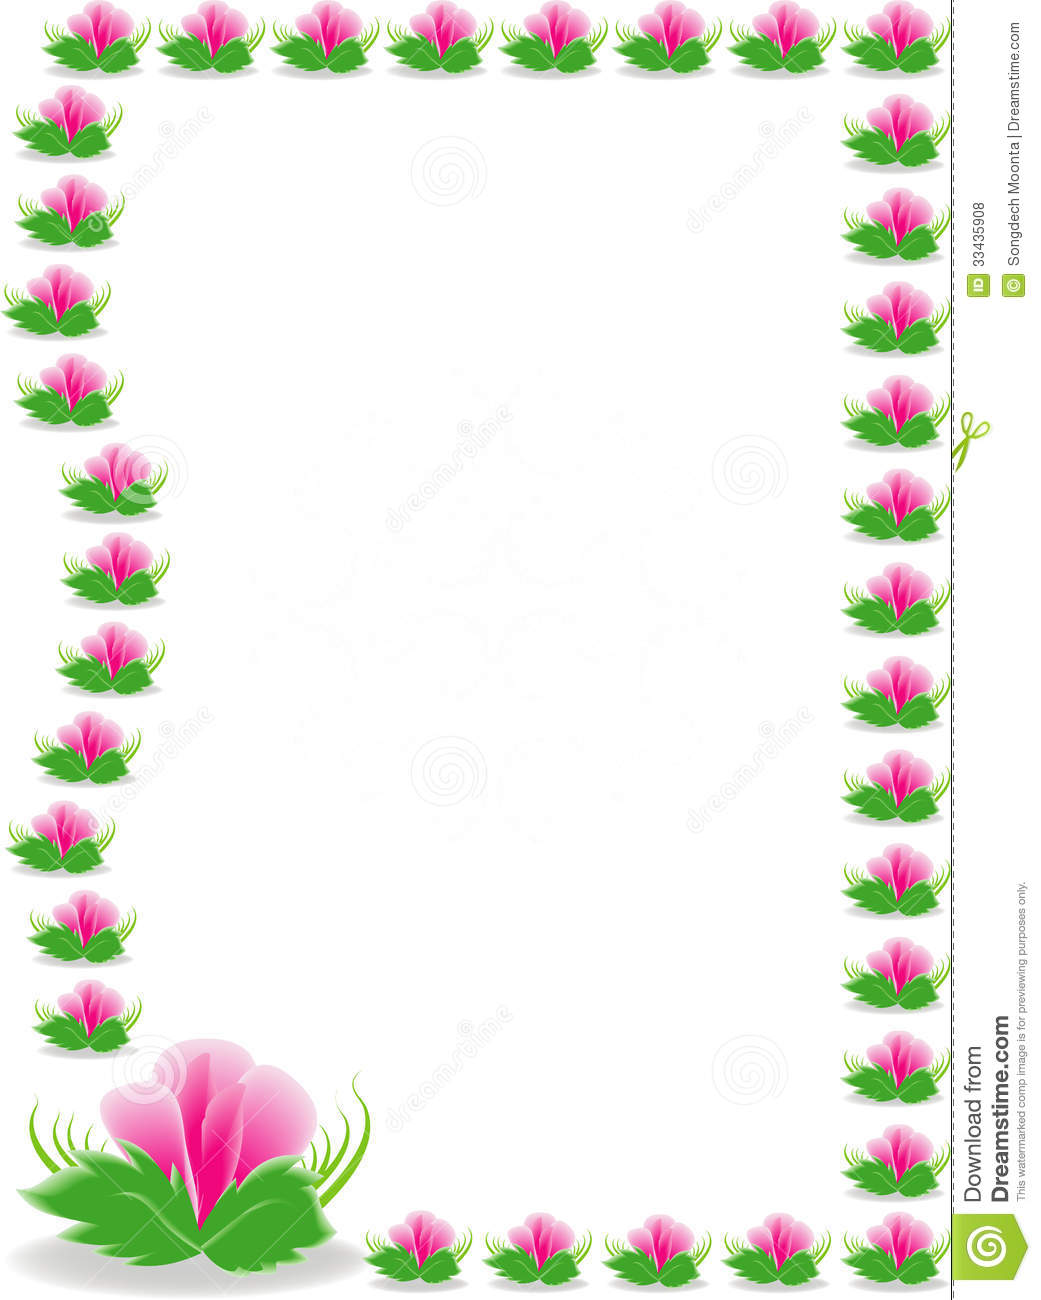 Background Designs For Projects Pink flowers border st...